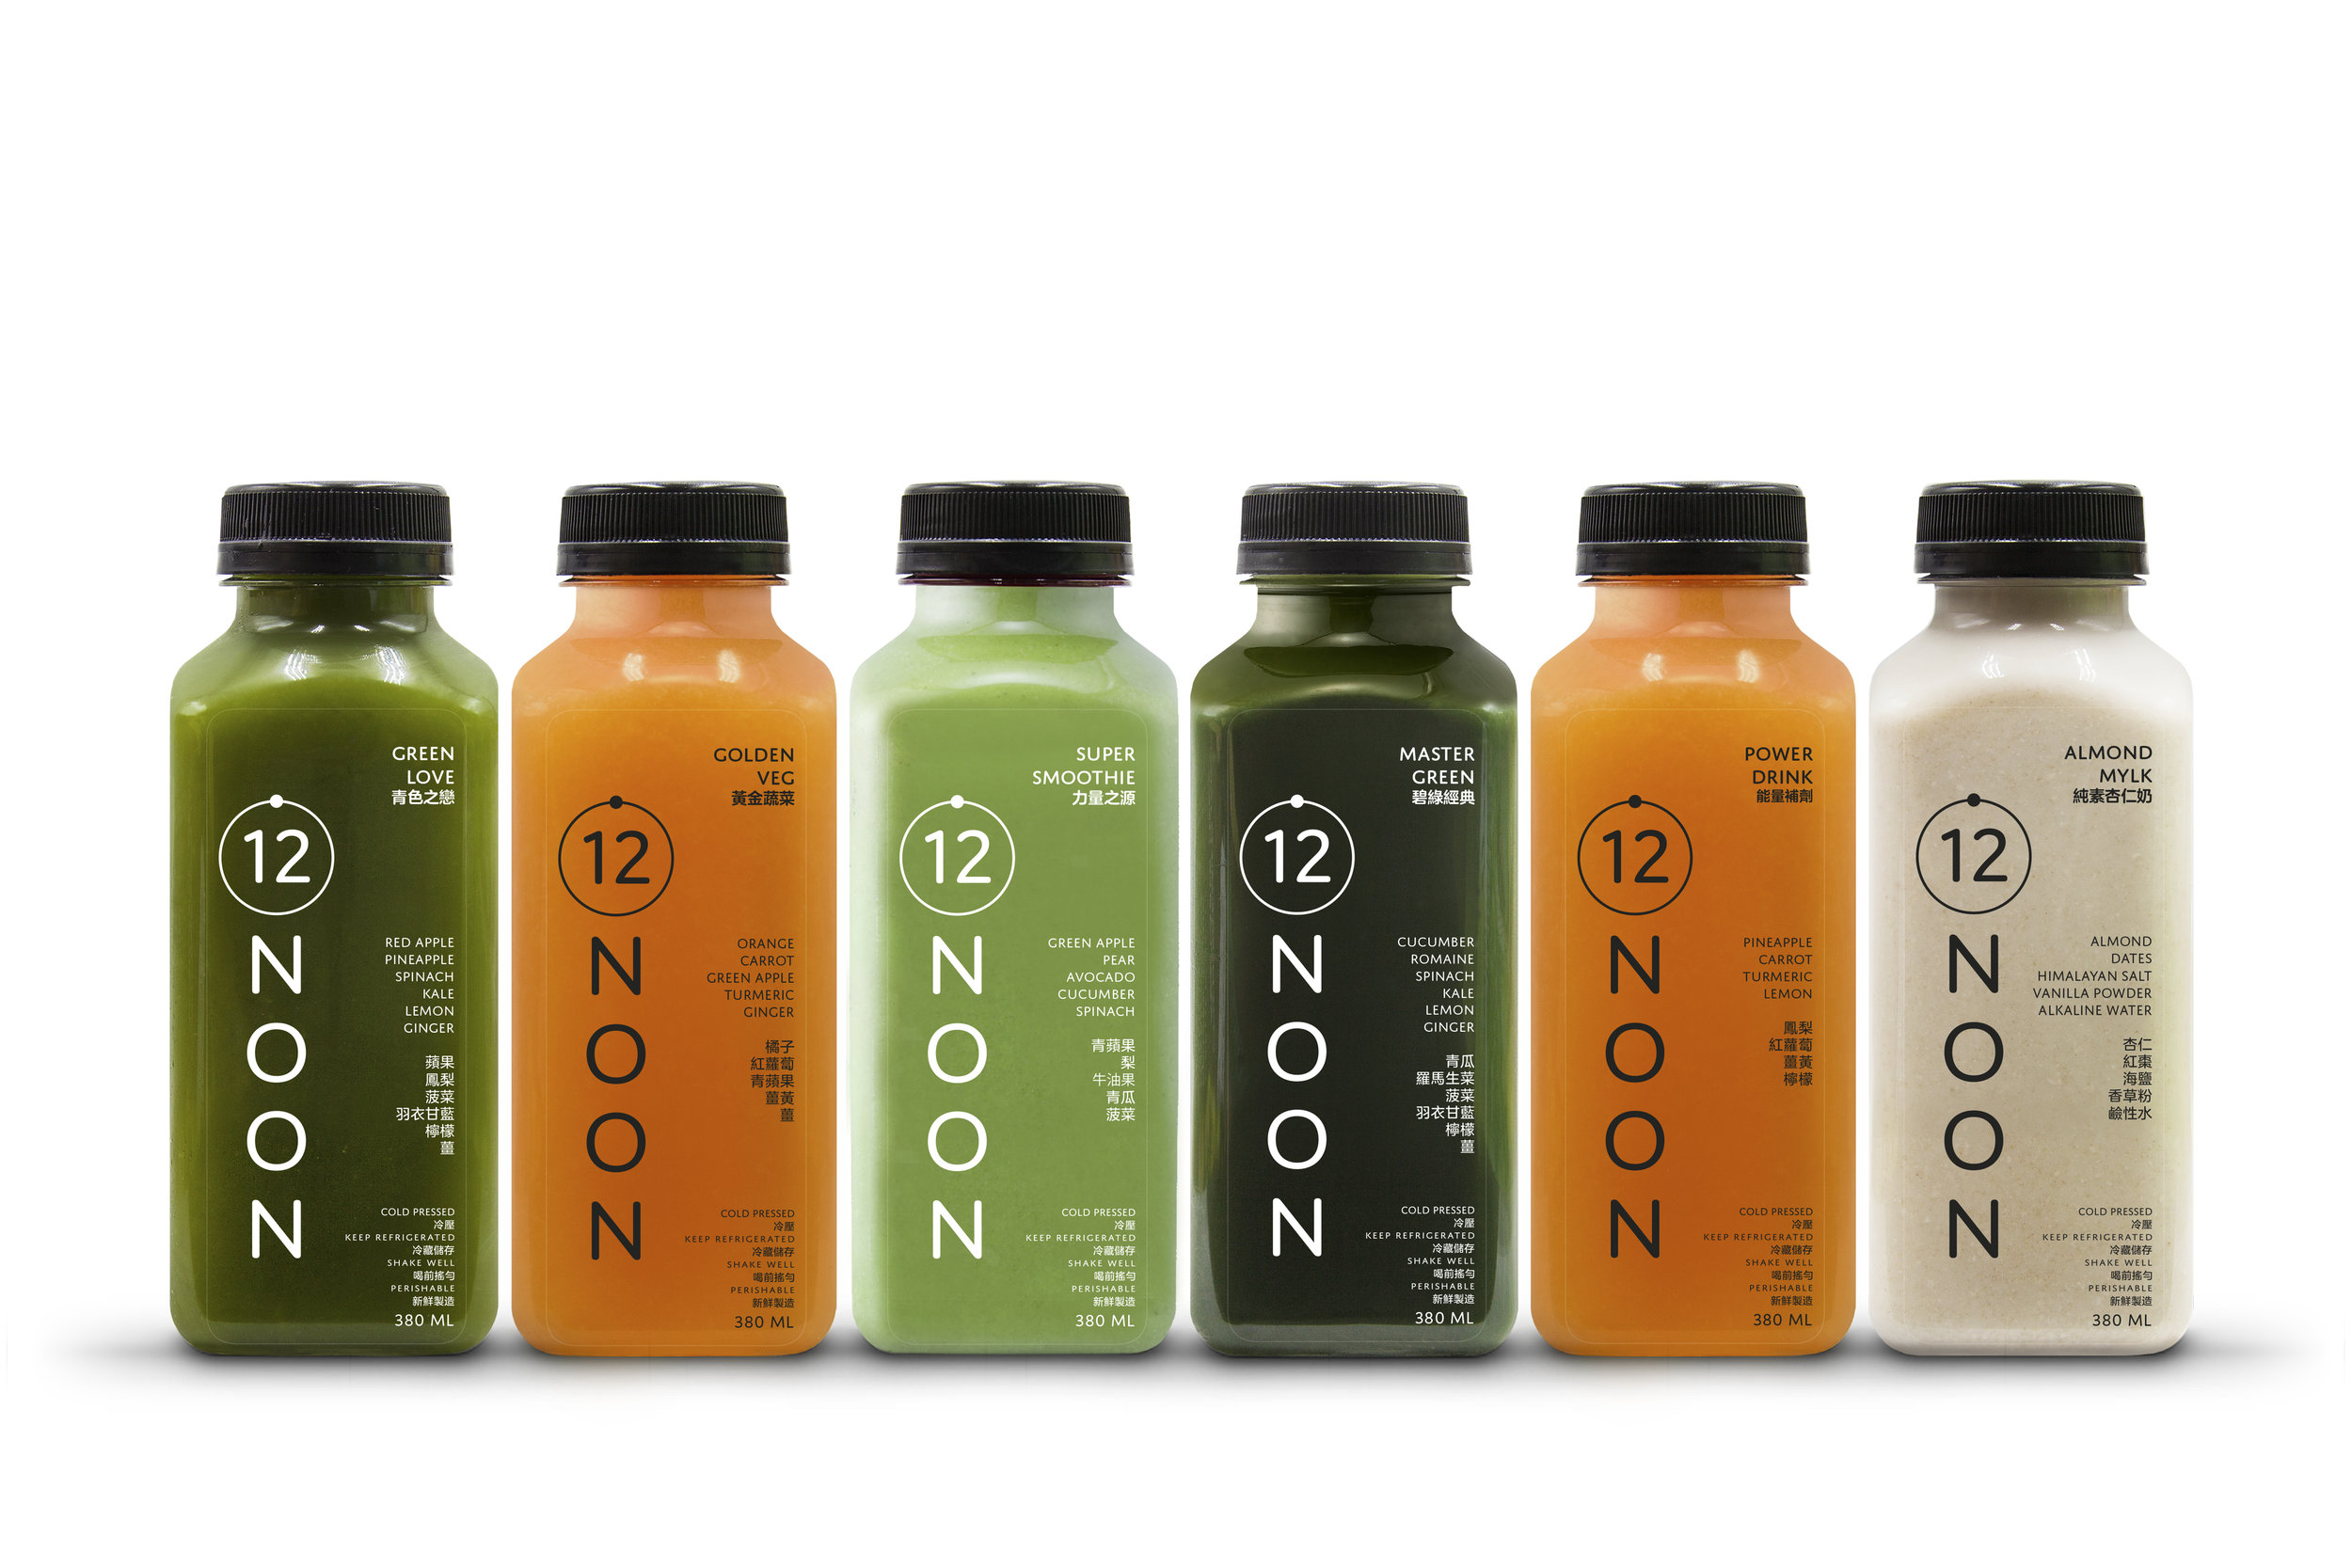 CLEANSE + - INTERMEDIATE 1093 Kcal Per DayLooking for an intermediate juice cleanse? CLEANSE + has the combination of fruits and vegetables in the juices and smoothies that are rich in fiber. It can help lower cholesterol level, control blood sugar and aids in achieving healthy weight goal.